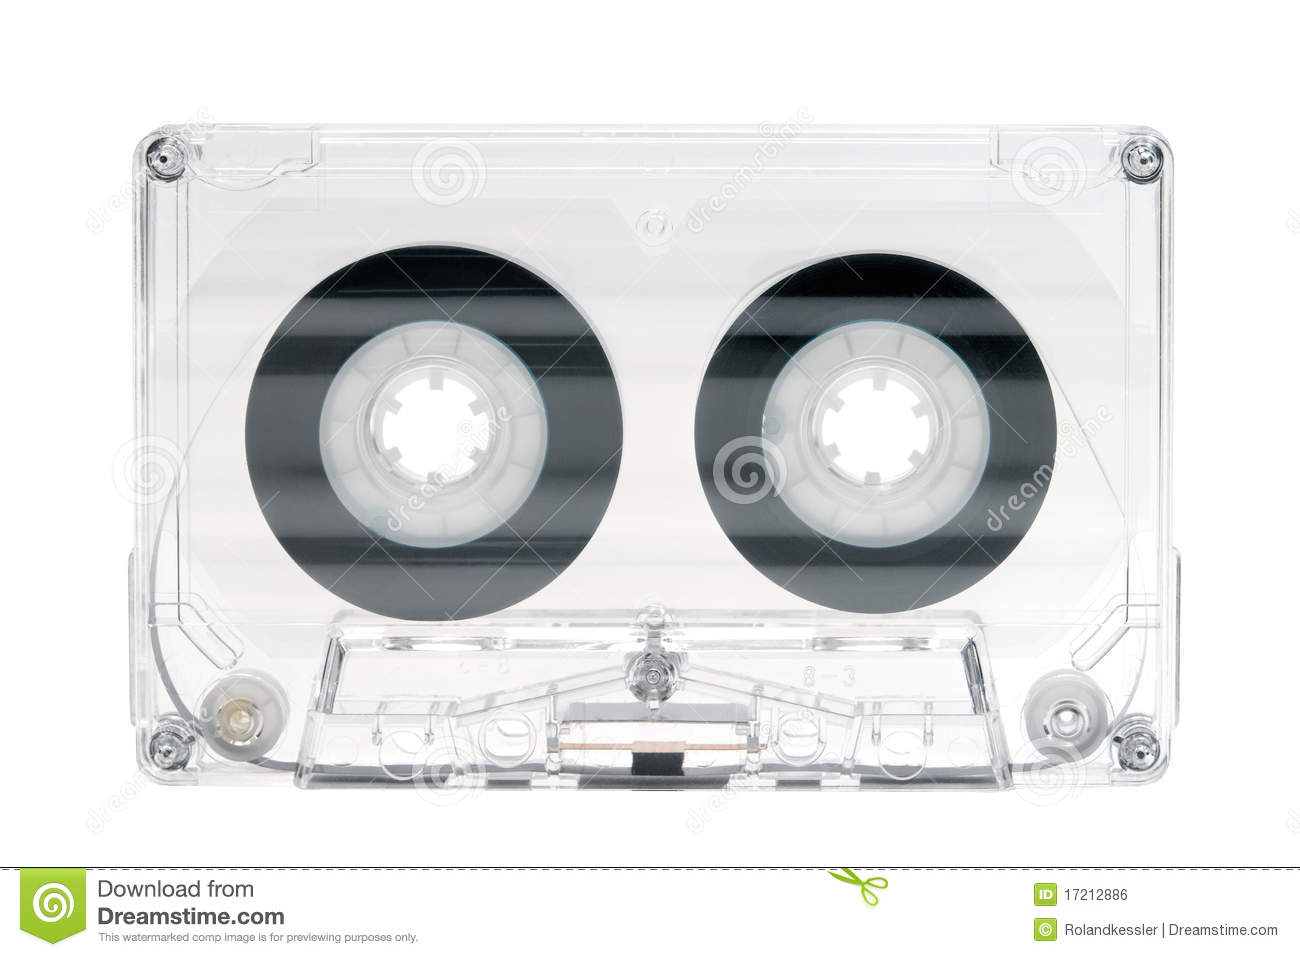 how to fix a squeaky cassette tape